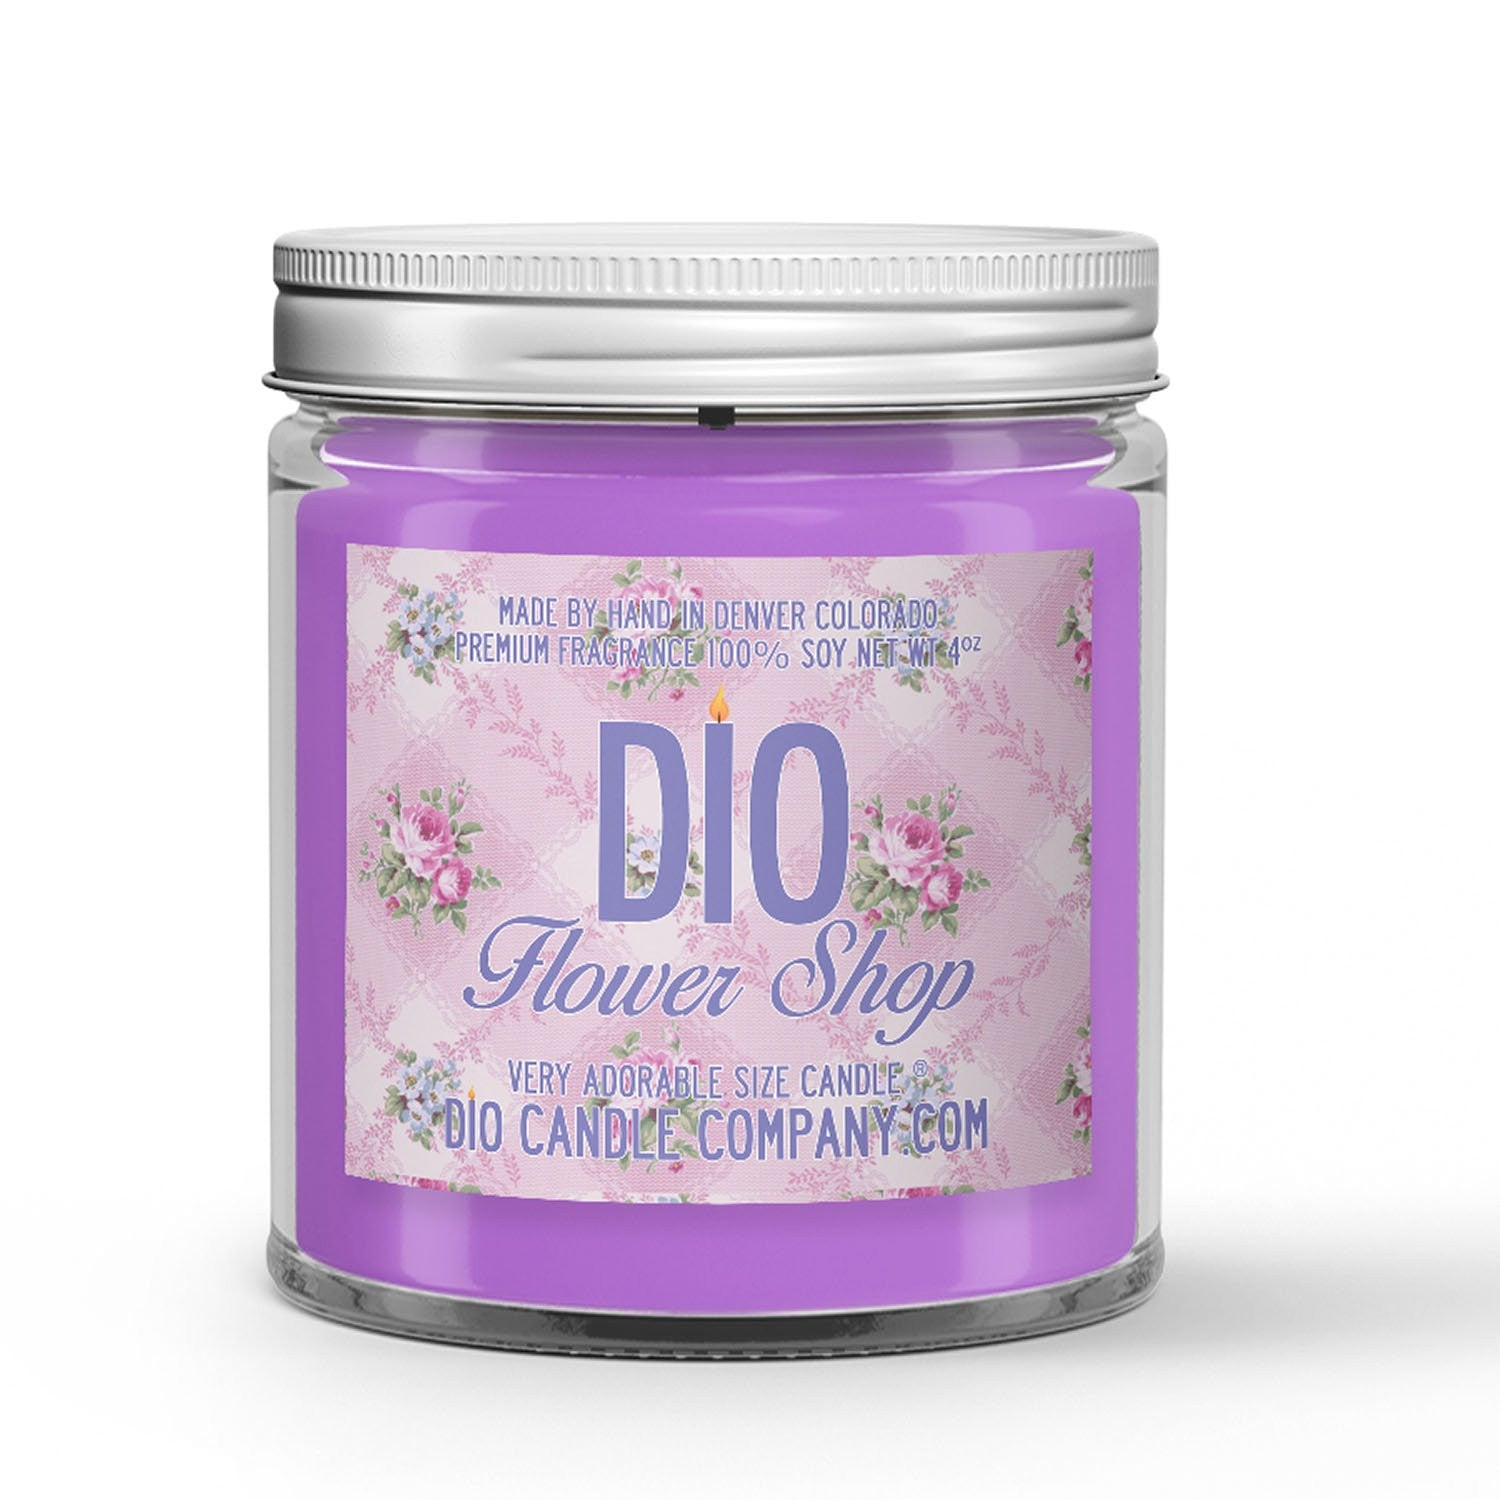 Flower Shop Mother's Day Candle Lilac - Wildflower Scented - Dio Candle Company